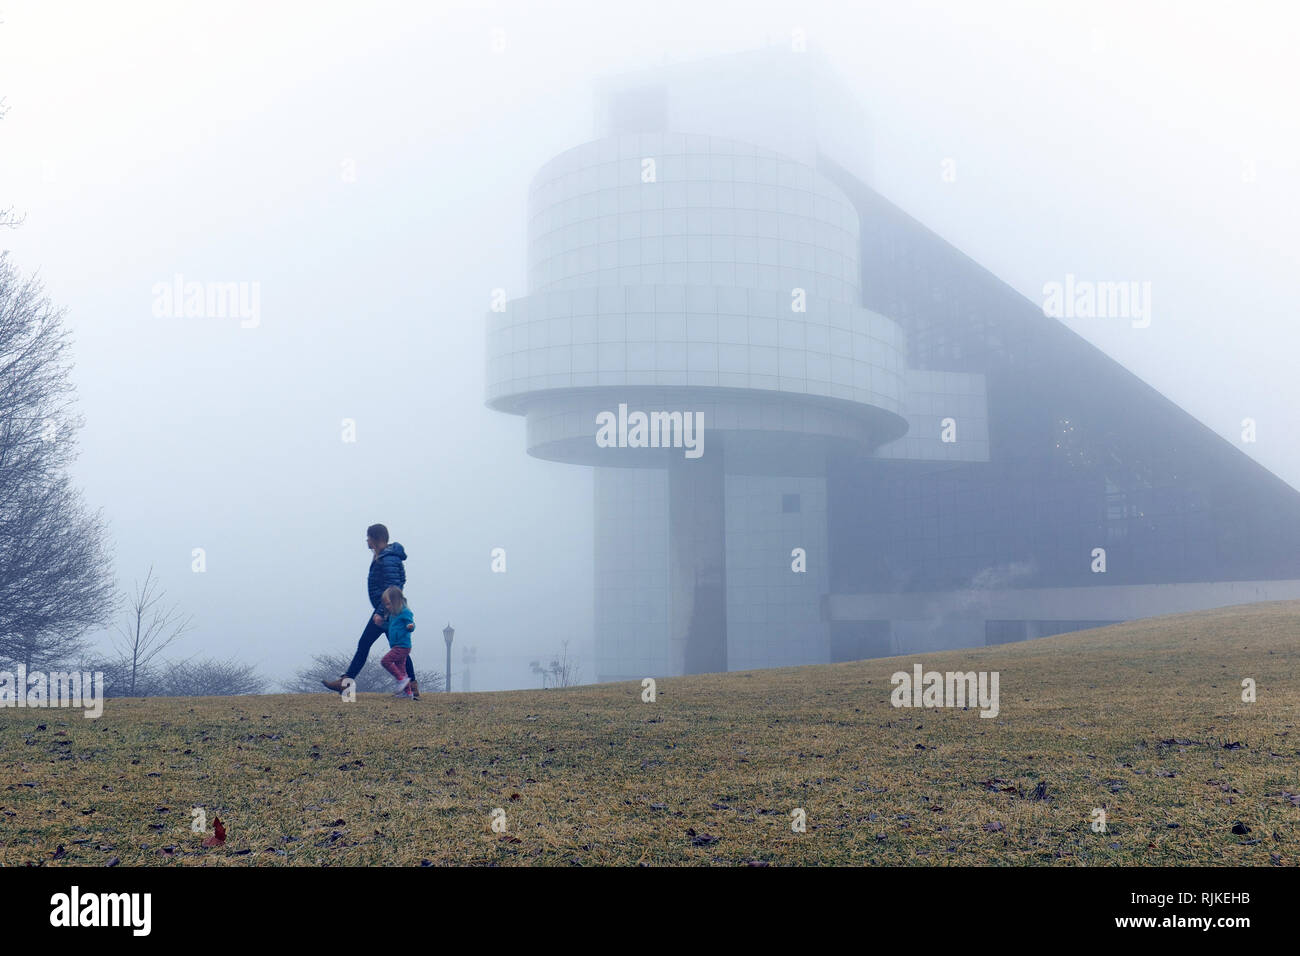 Cleveland, Ohio, USA. 6th Feb, 2019.  A woman and young girl stroll along the extremely foggy north coast harbor in downtown Cleveland, Ohio, USA.  The Rock and Roll Hall of Fame and Museum, designed by I.M Pei, takes on a surreal look during this extreme weather phenomena.  Credit: Mark Kanning/Alamy Live News. - Stock Image